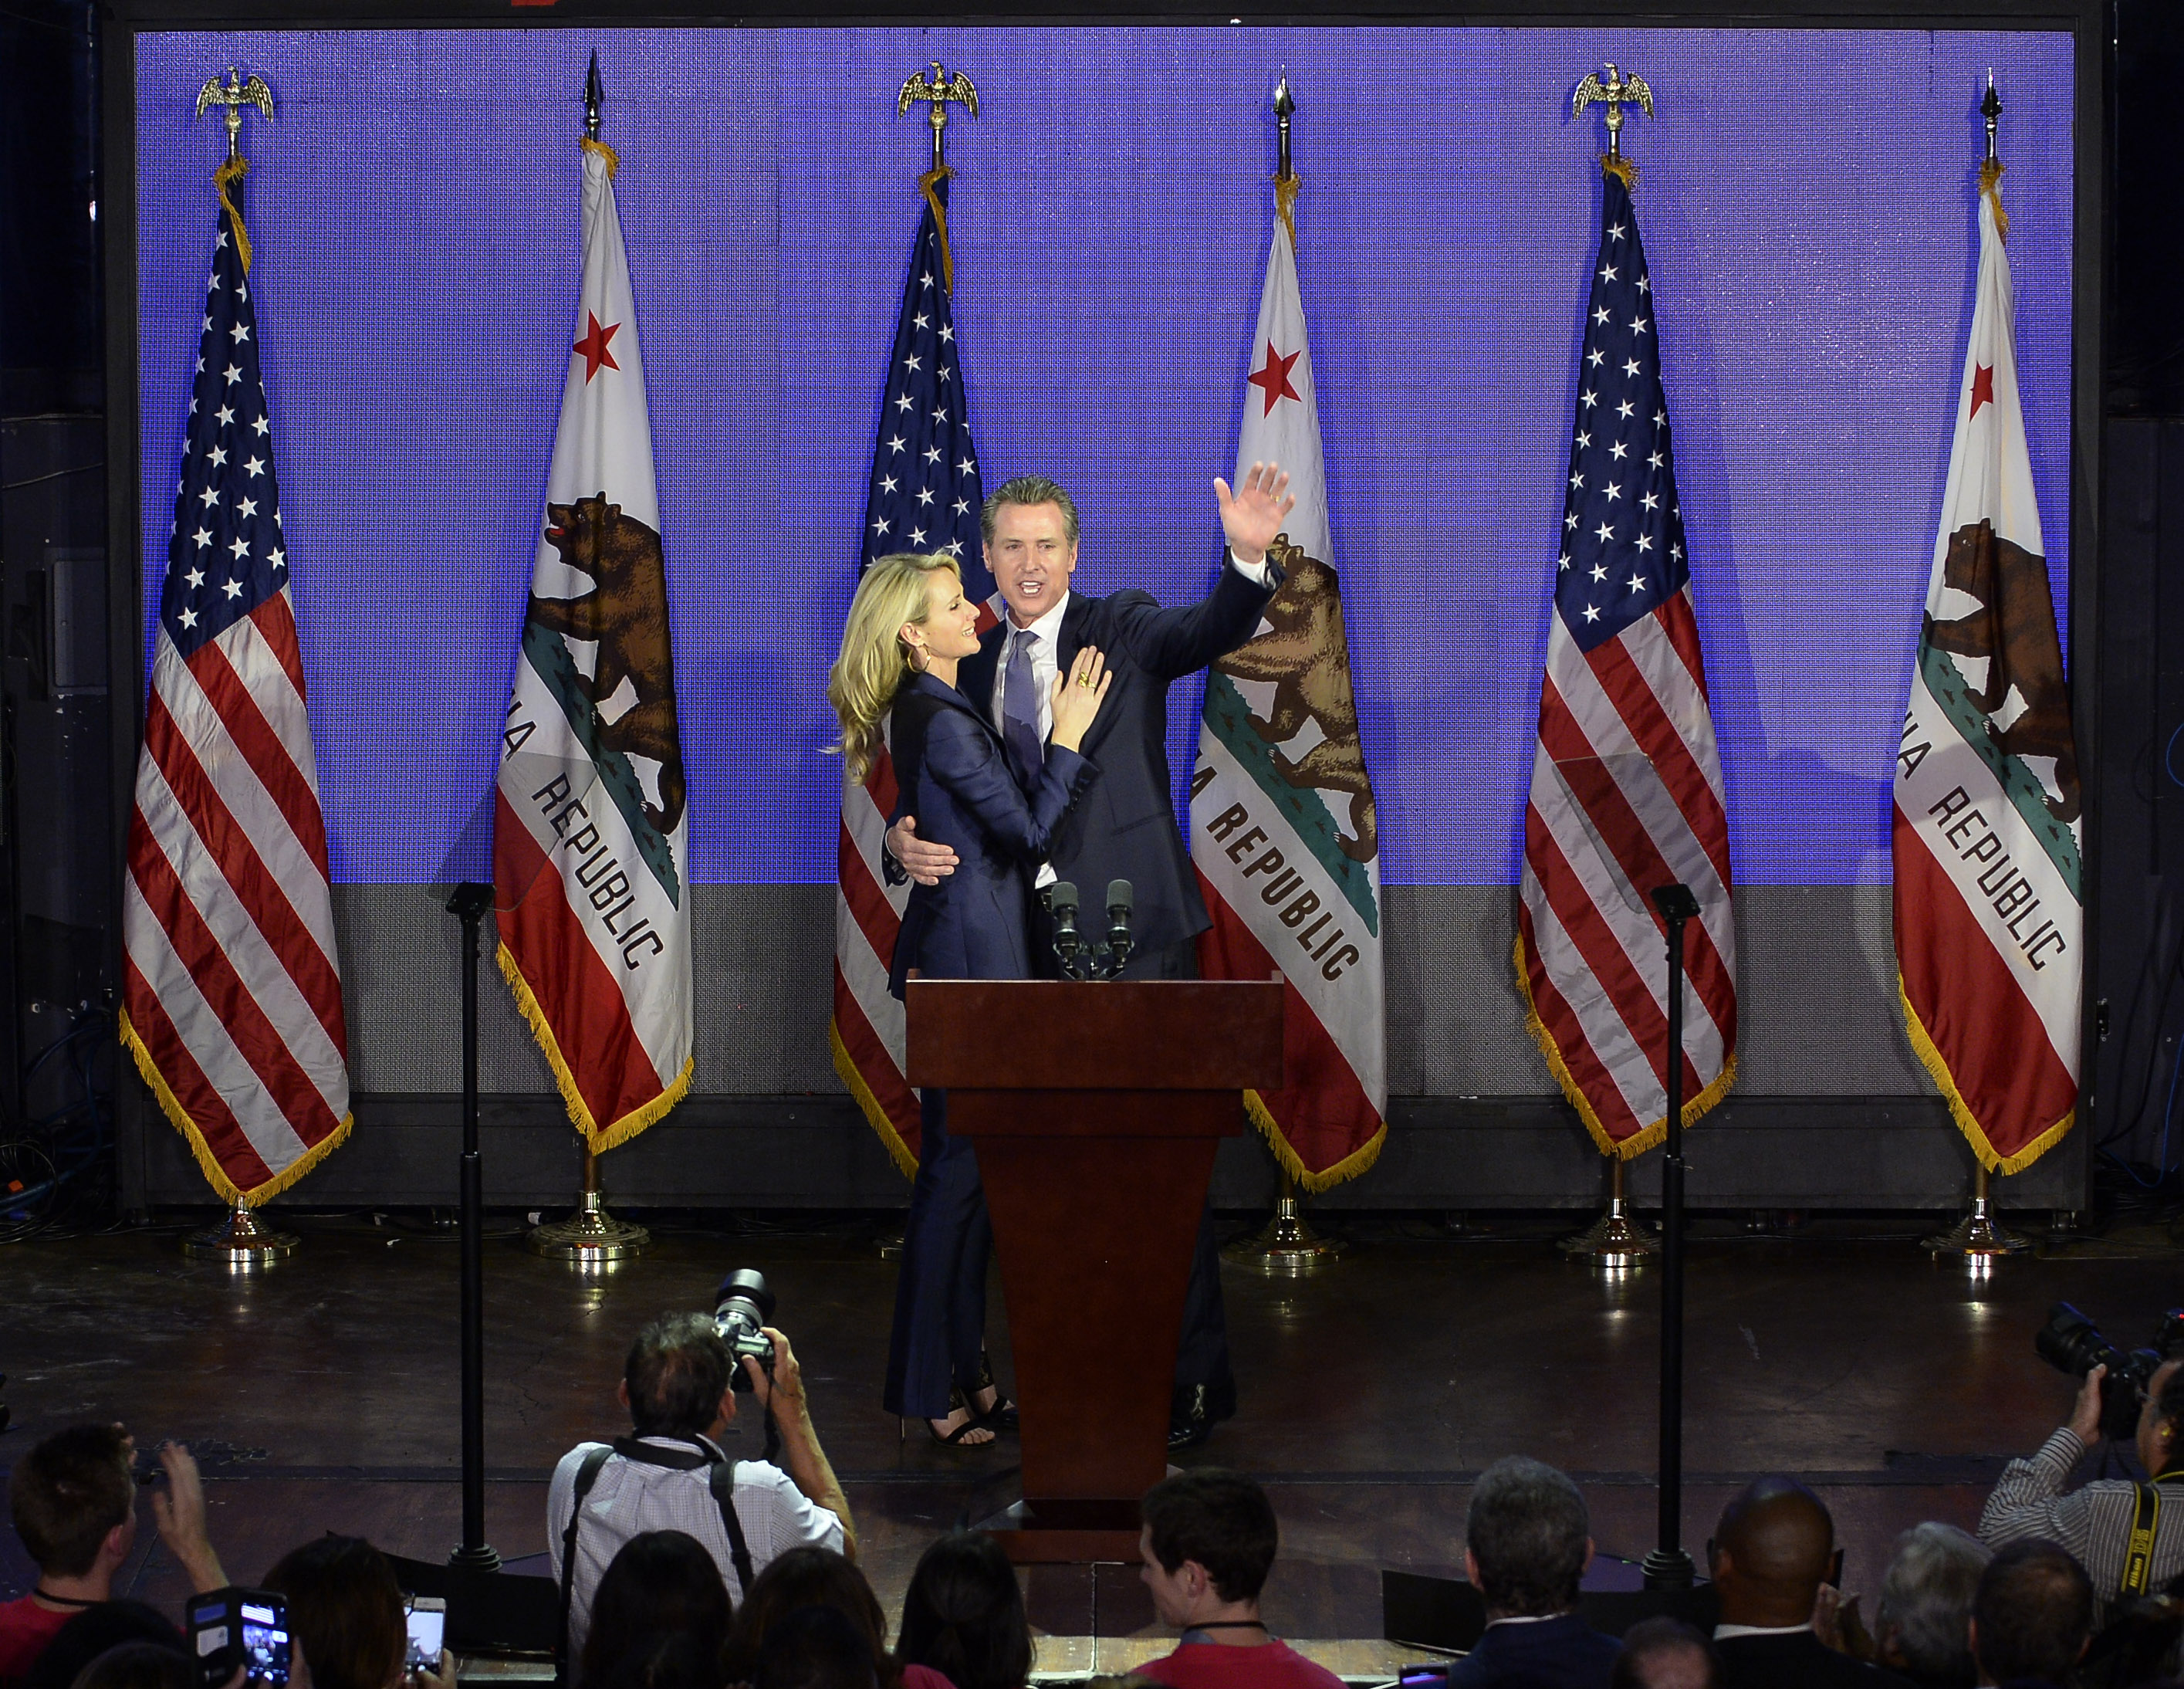 Democratic gubernatorial candidate Gavin Newsom and his wife Jennifer Siebel Newsom wave to supporters during election night event. (Kevork Djansezian/Getty Images)